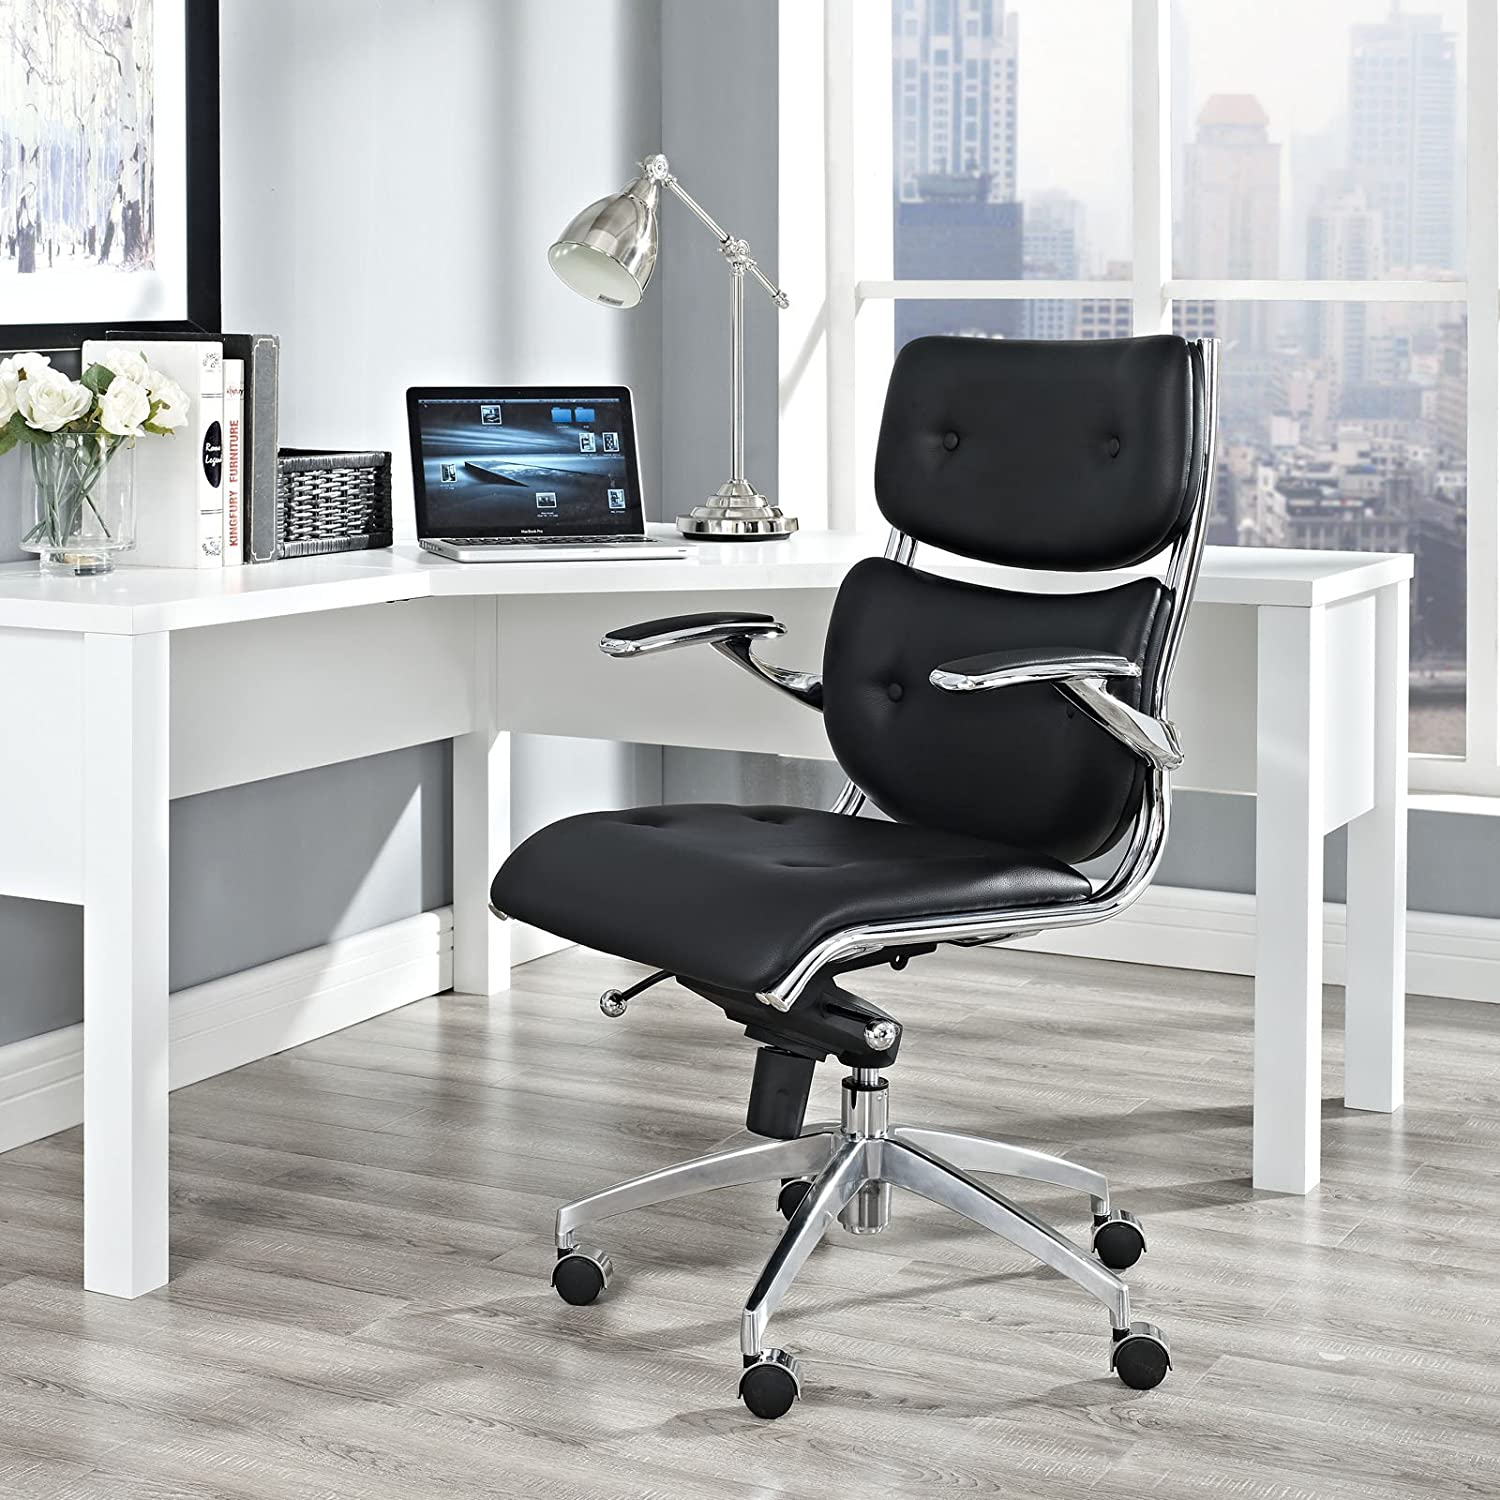 hardwood chairs adjustabale ergonomic well gallery combined of desk without white furniture armless and images armles chair arms designer as floor awesome upholstered office with